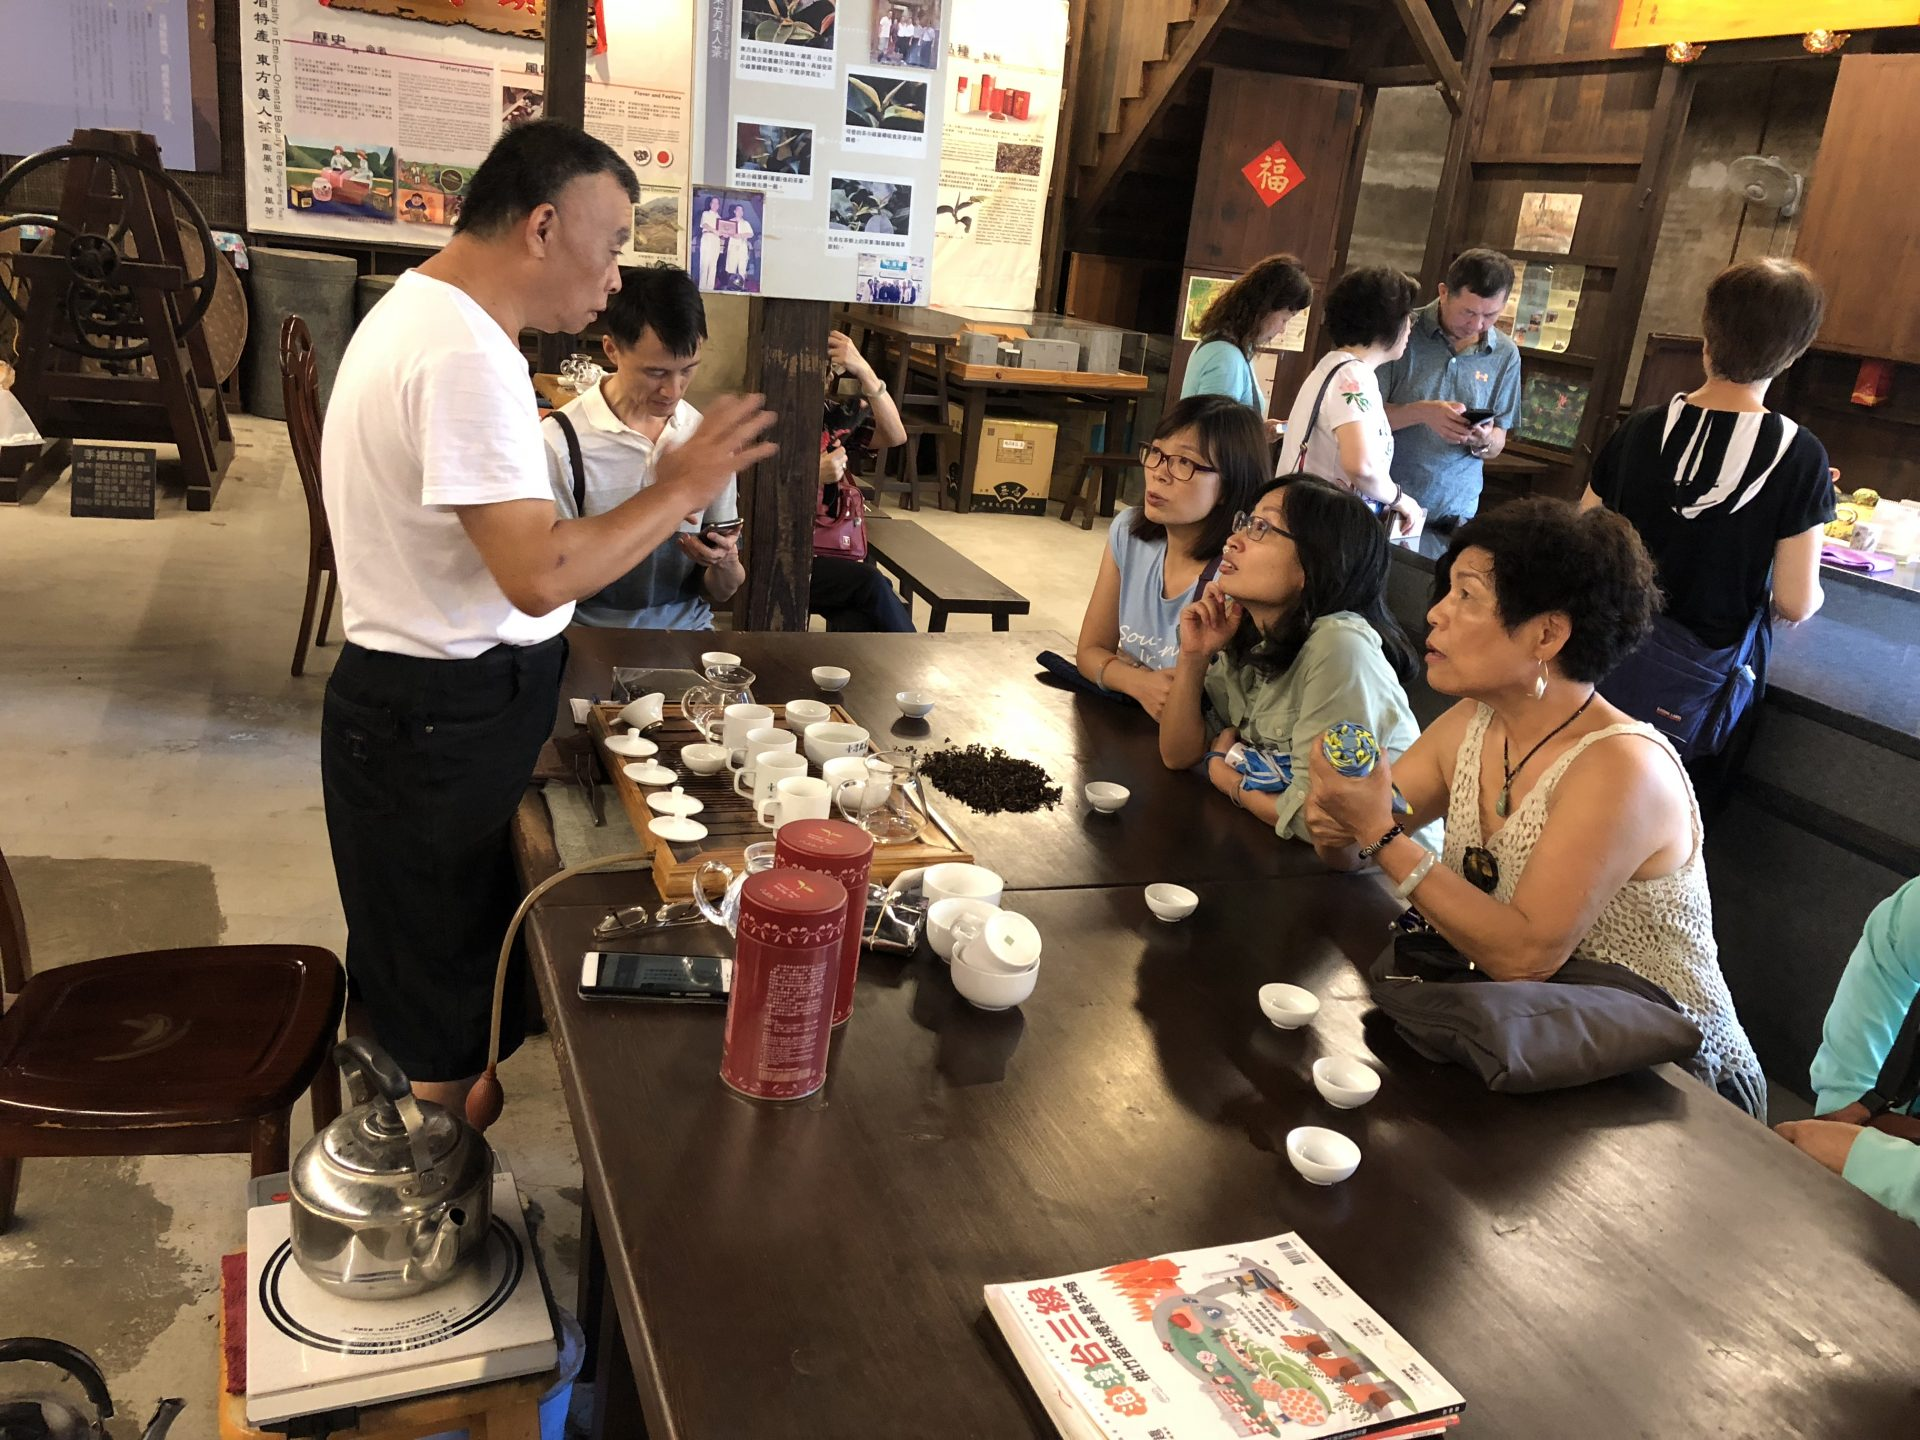 The operator of a hundred-year-old tea shop explain the history of the Oriental Beauty Tea to visitors (Image: Billy Shyu/ Vision Times)